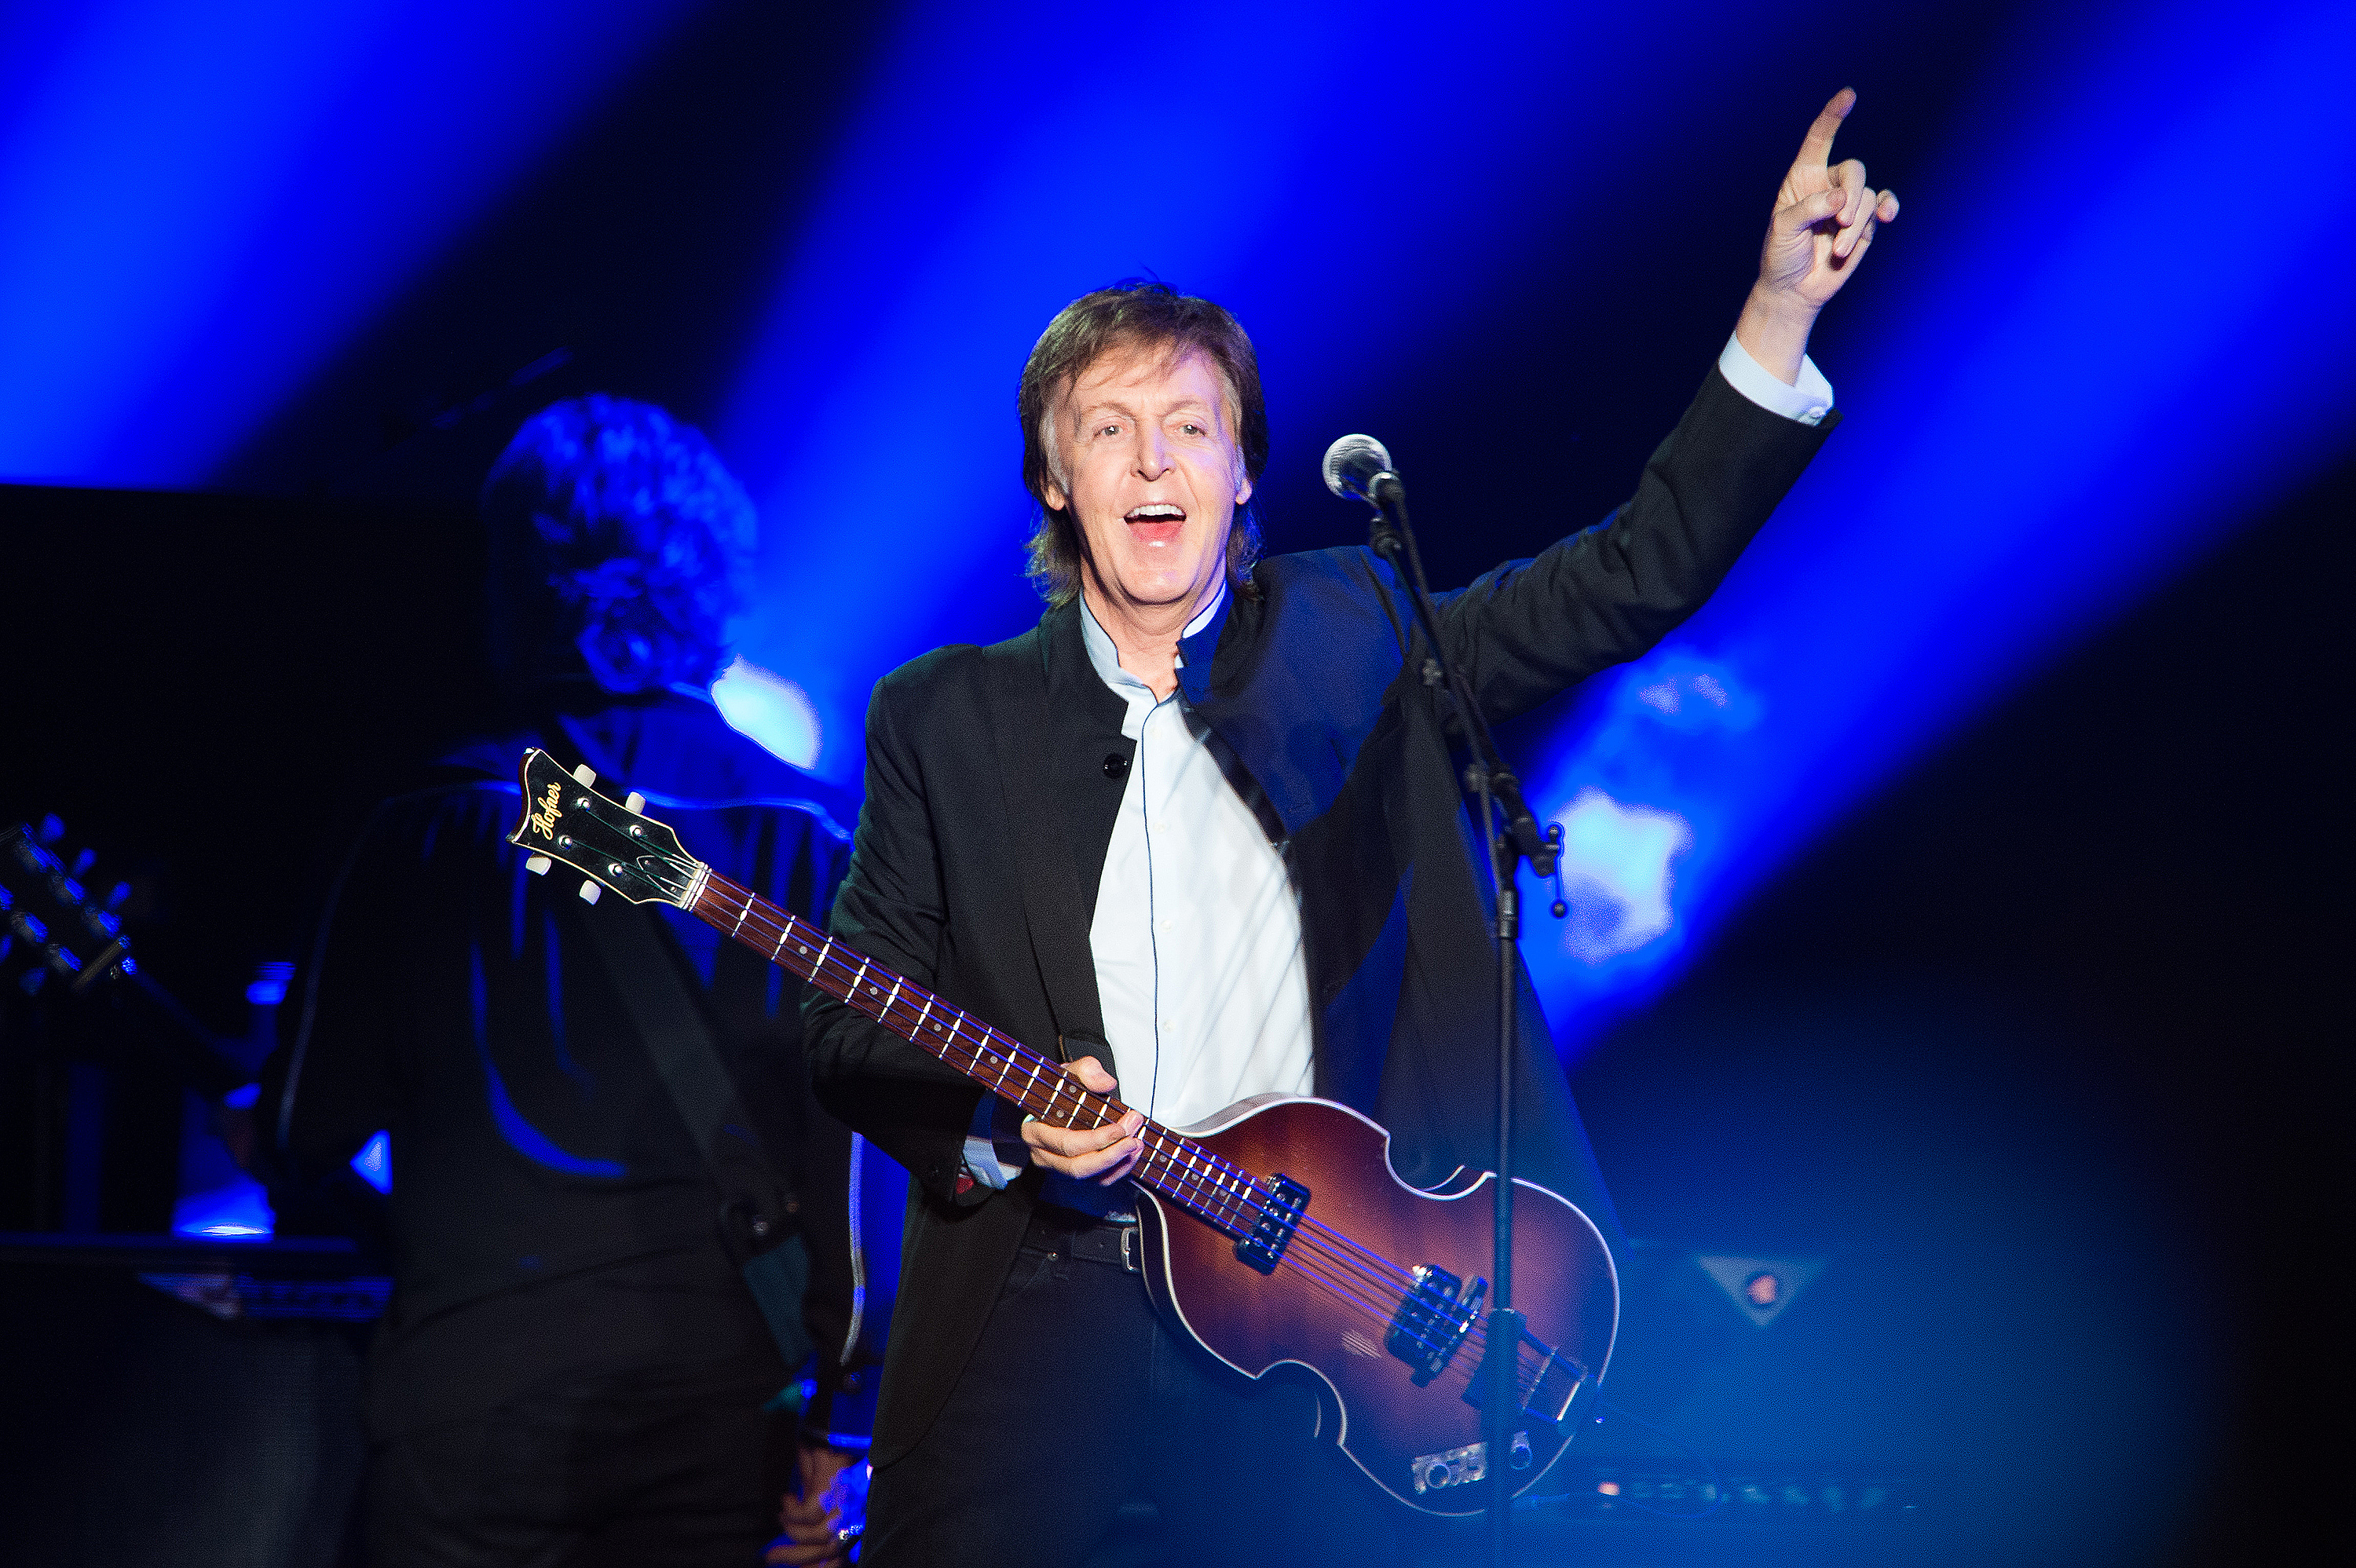 Paul McCartney Talks Soundchecks Private Show Tour